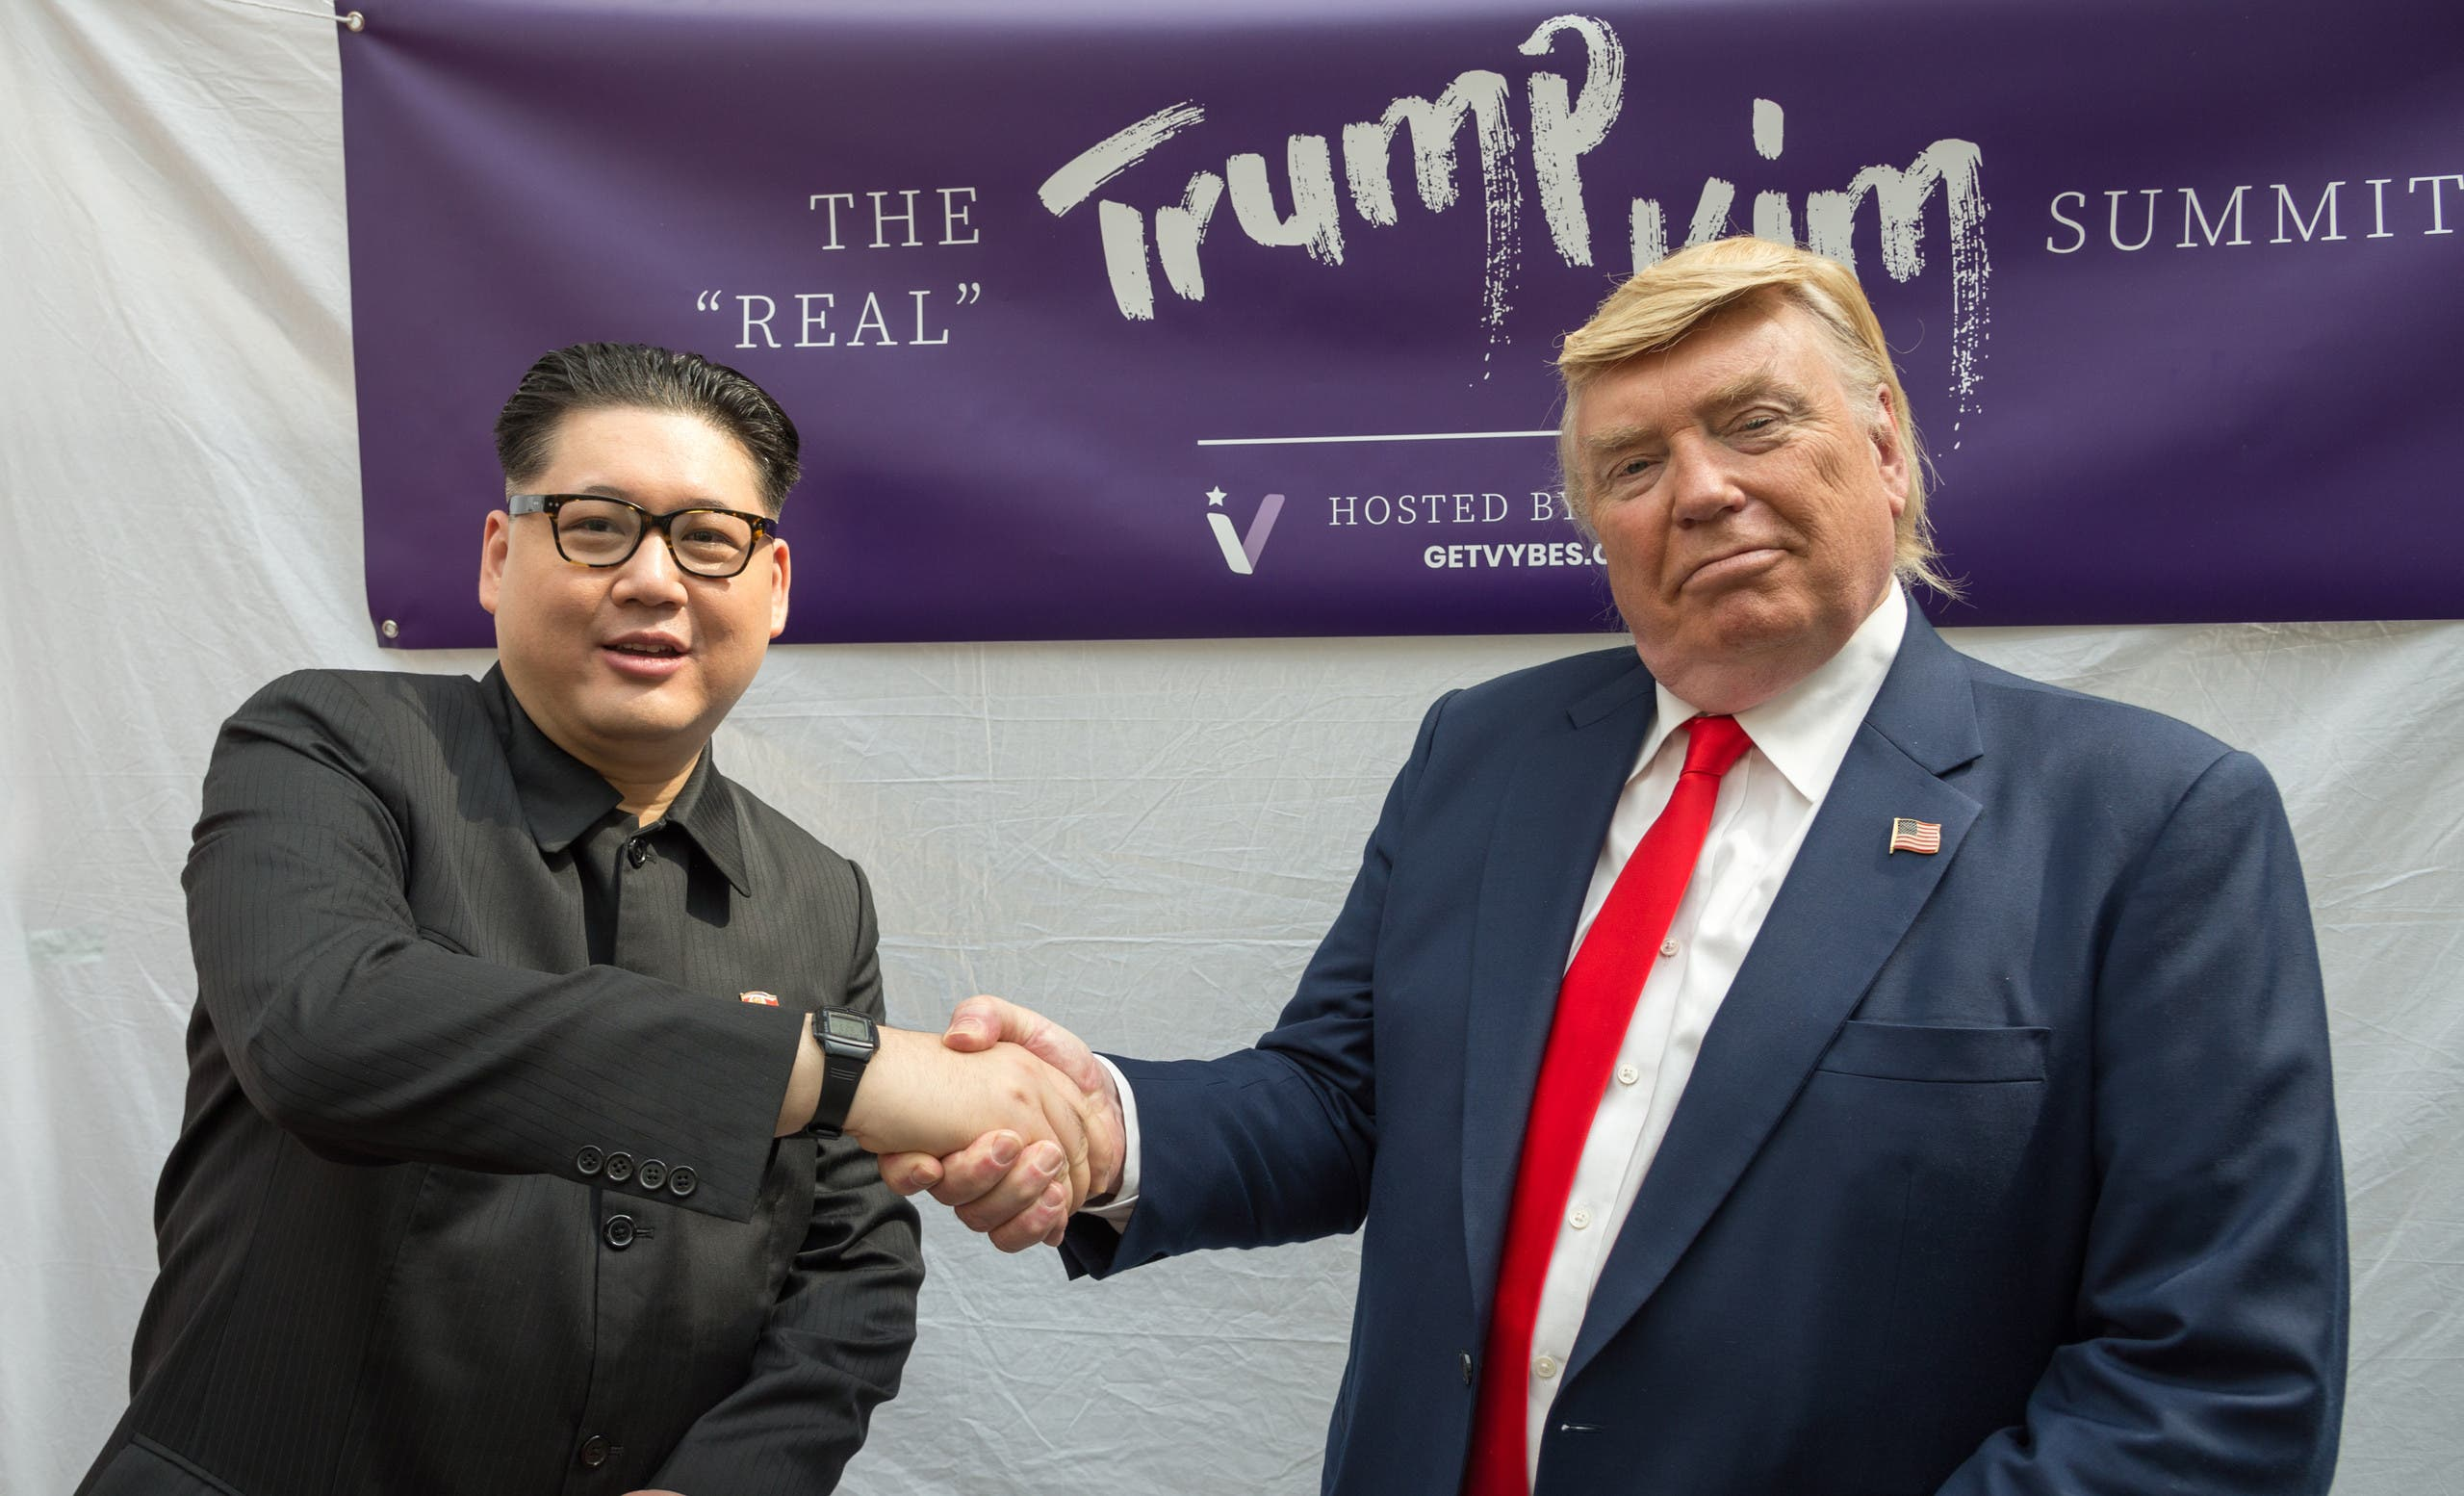 Kim Jong Un and Donald Trump impersonators Howard X (L) and Dennis Alan (R) shakes hands during a promotional event on June 9, 2018 in Singapore. (AFP)